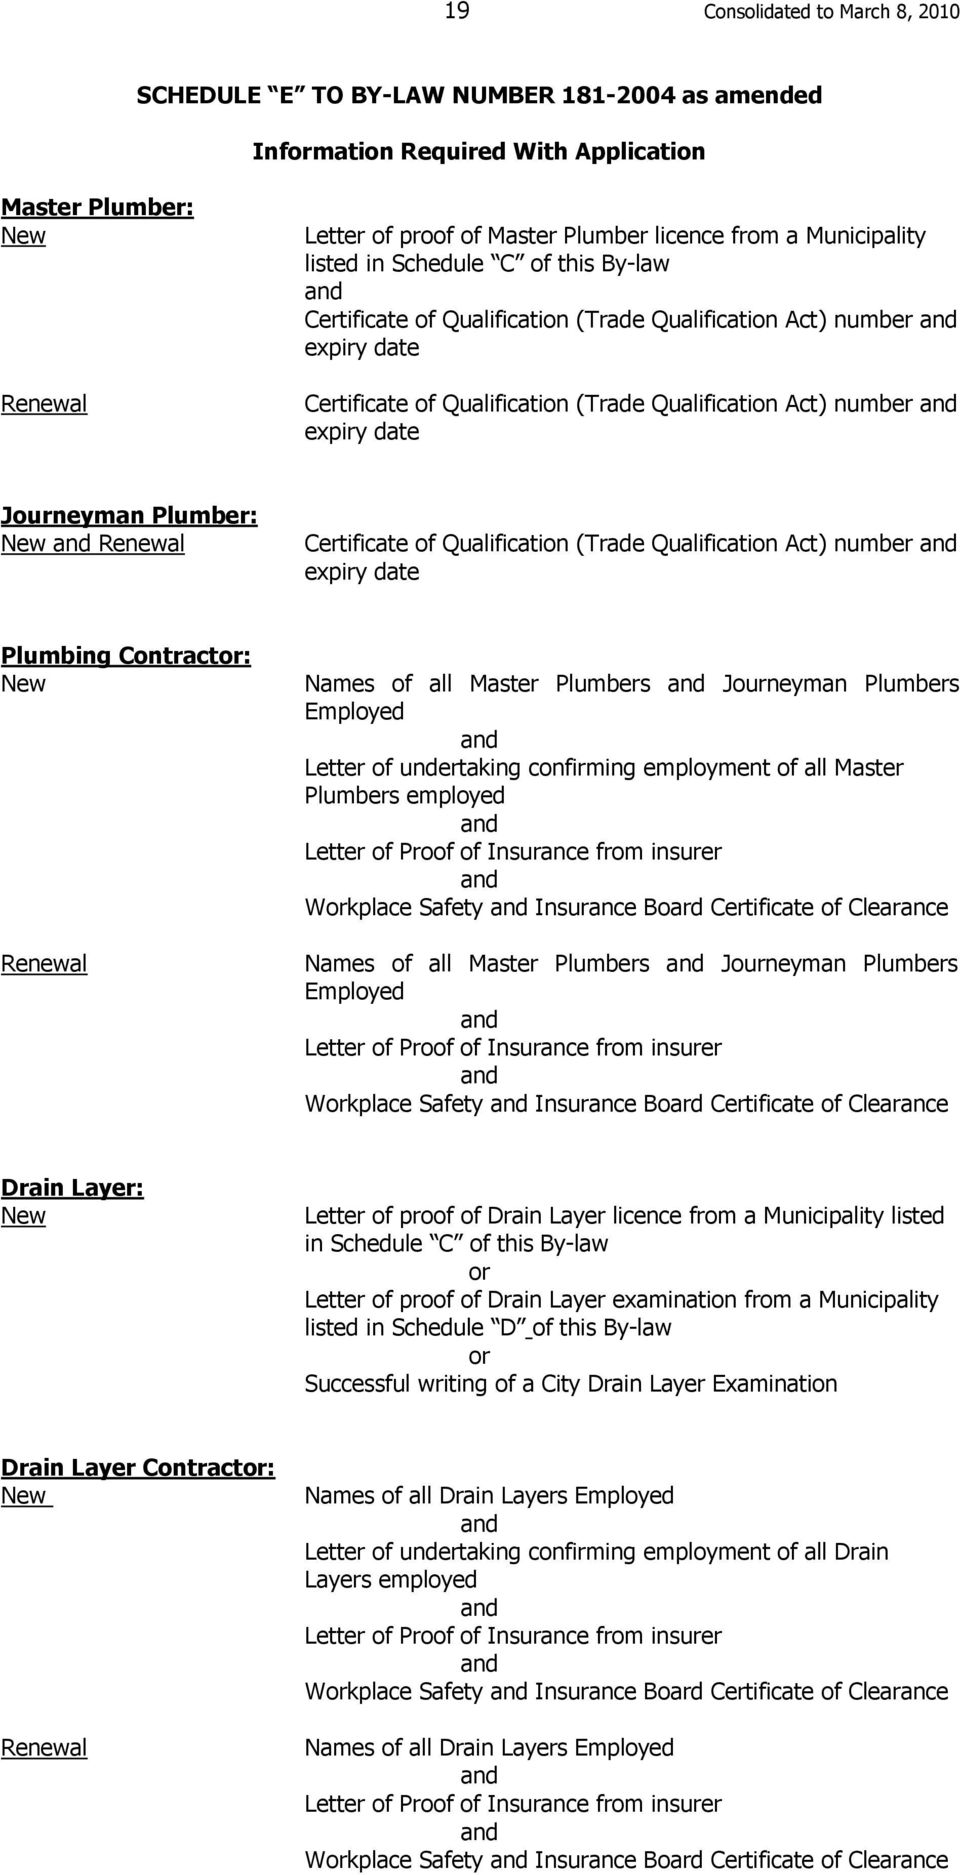 Journeyman Plumber: New Renewal Certificate of Qualification (Trade Qualification Act) number expiry date Plumbing Contractor: New Renewal Names of all Master Plumbers Journeyman Plumbers Employed